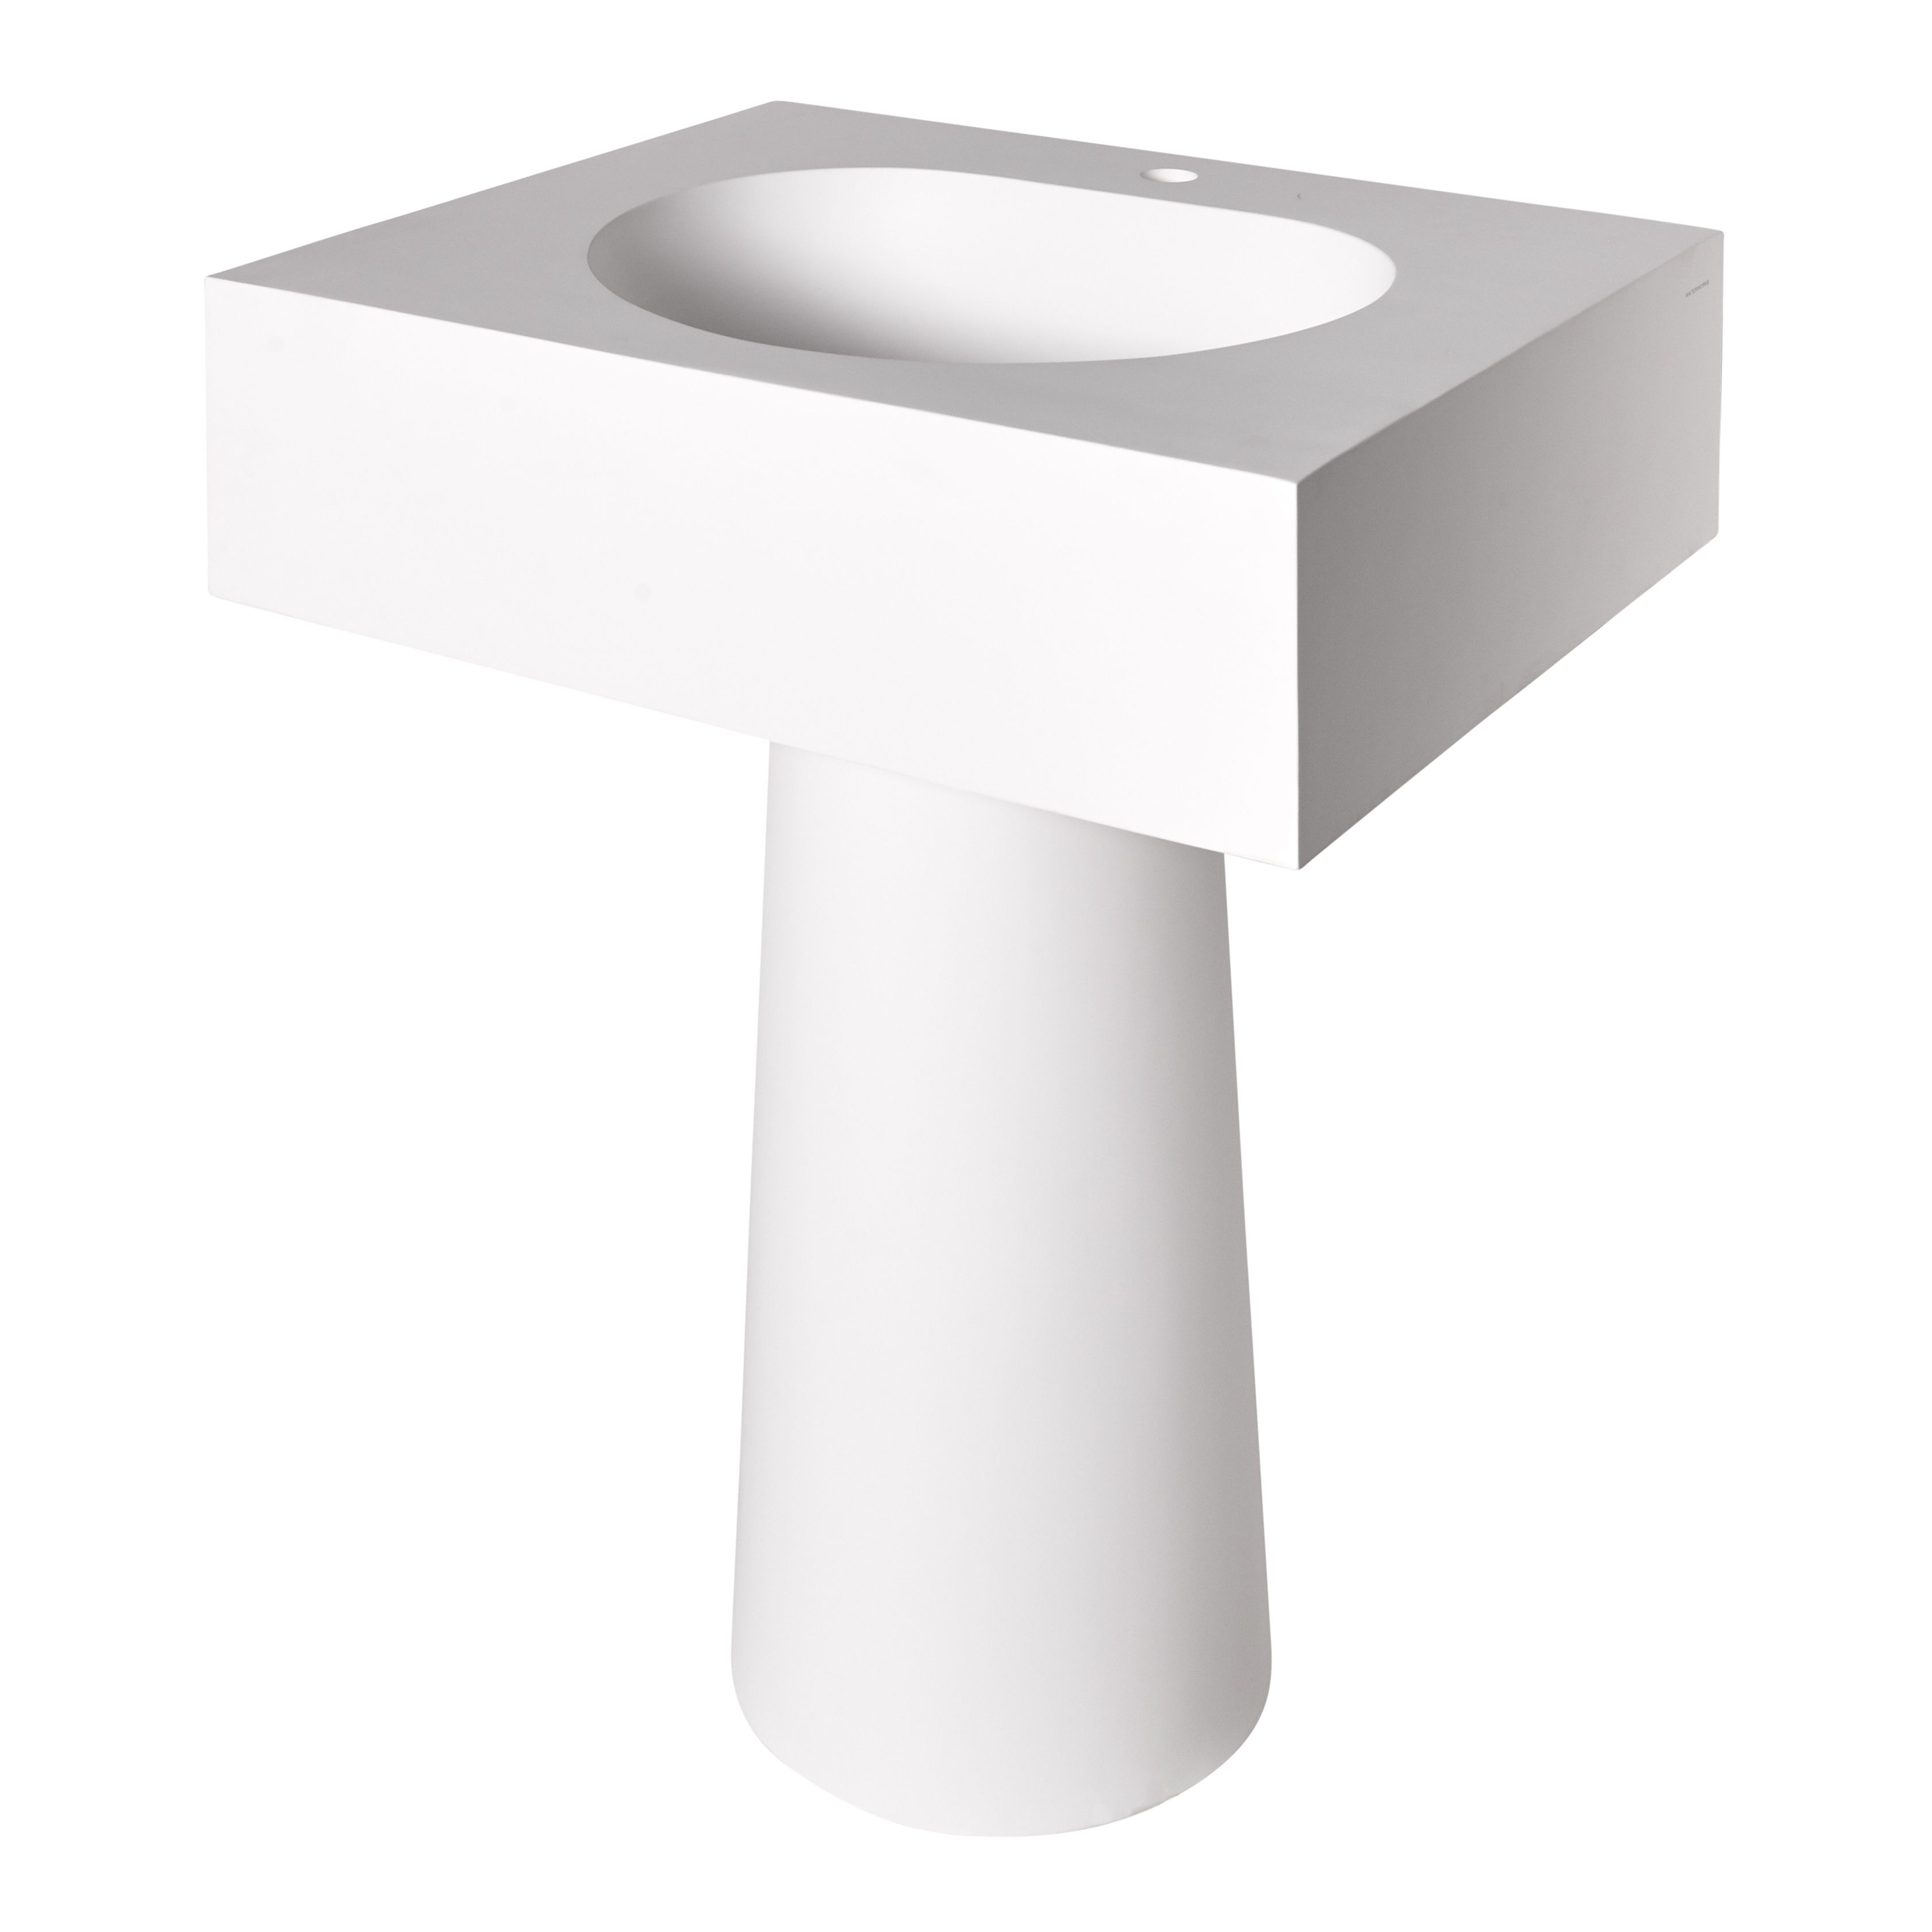 easy vitreous stain features that is resistant germ elegant pin an this china pedestal construction to and wall mount clean sink